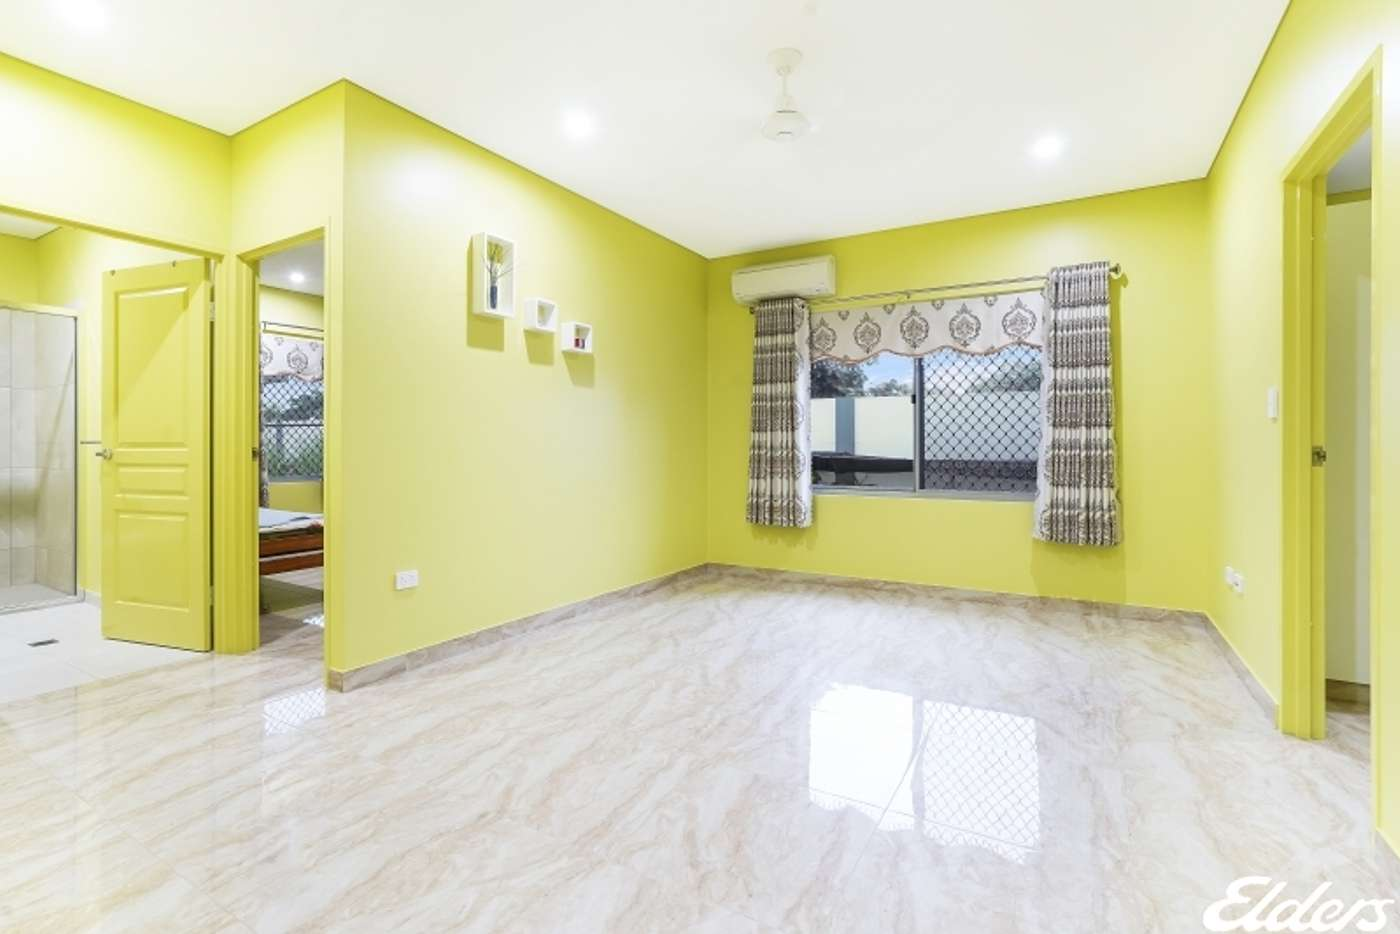 Sixth view of Homely house listing, 48 Saunders Street, Muirhead NT 810